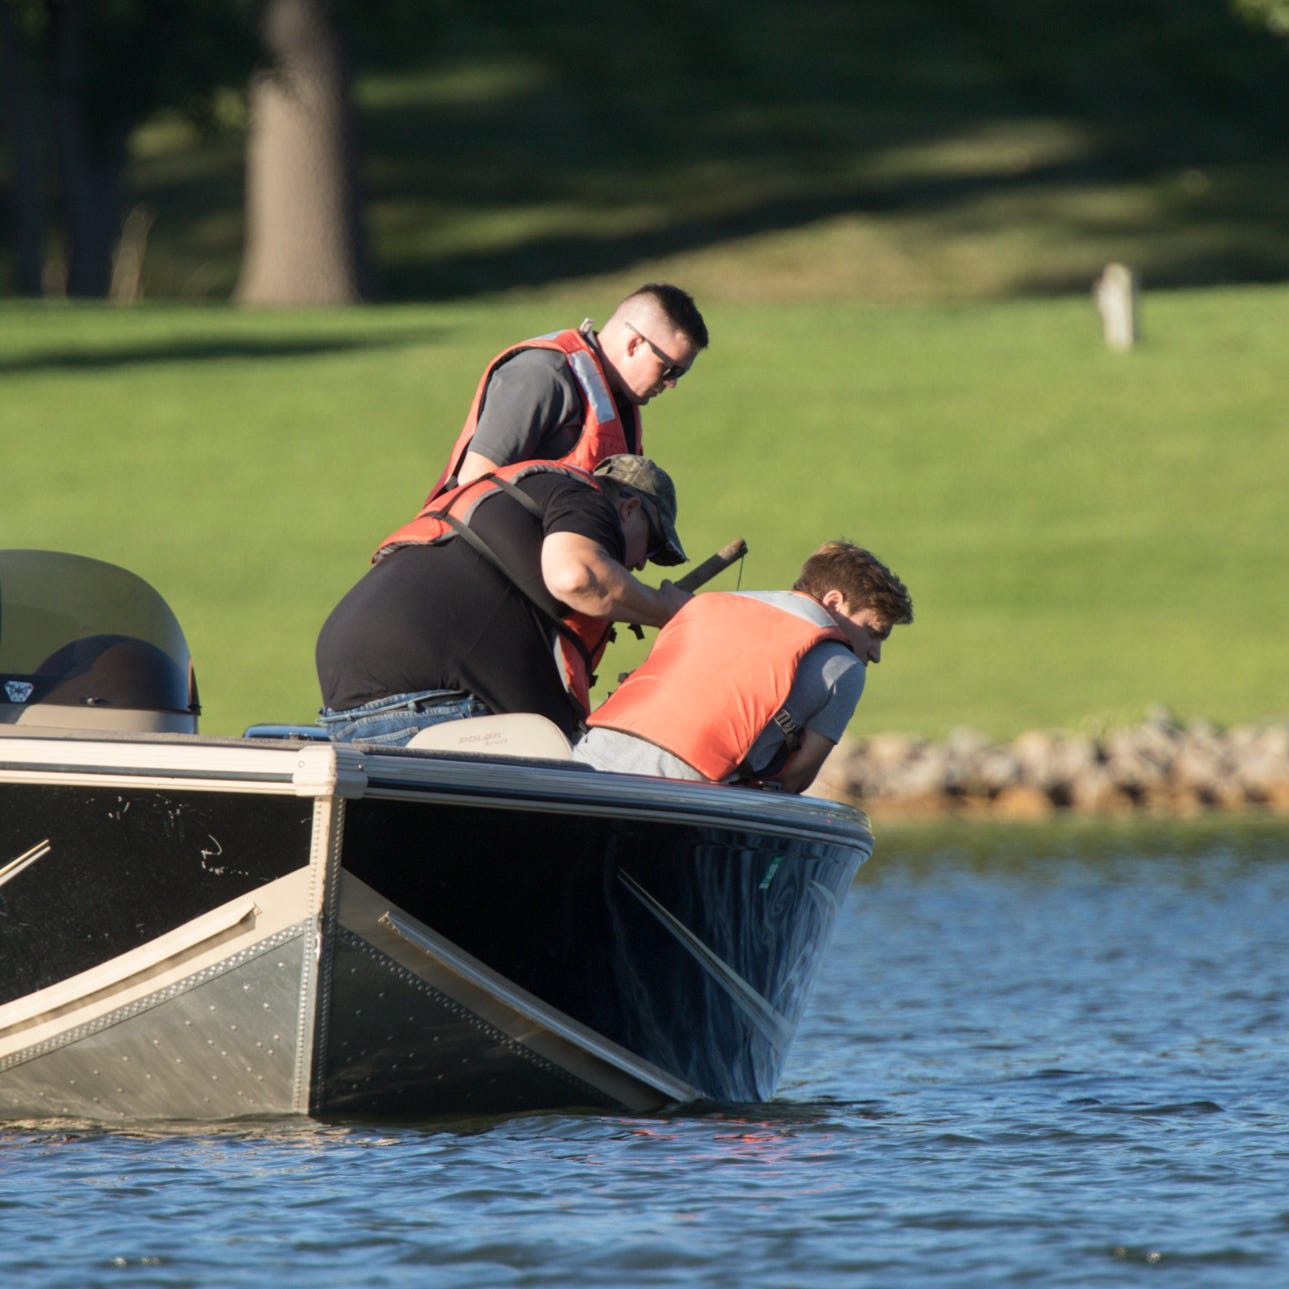 Dive team still searching for possible drowning victim at Lake Shannon